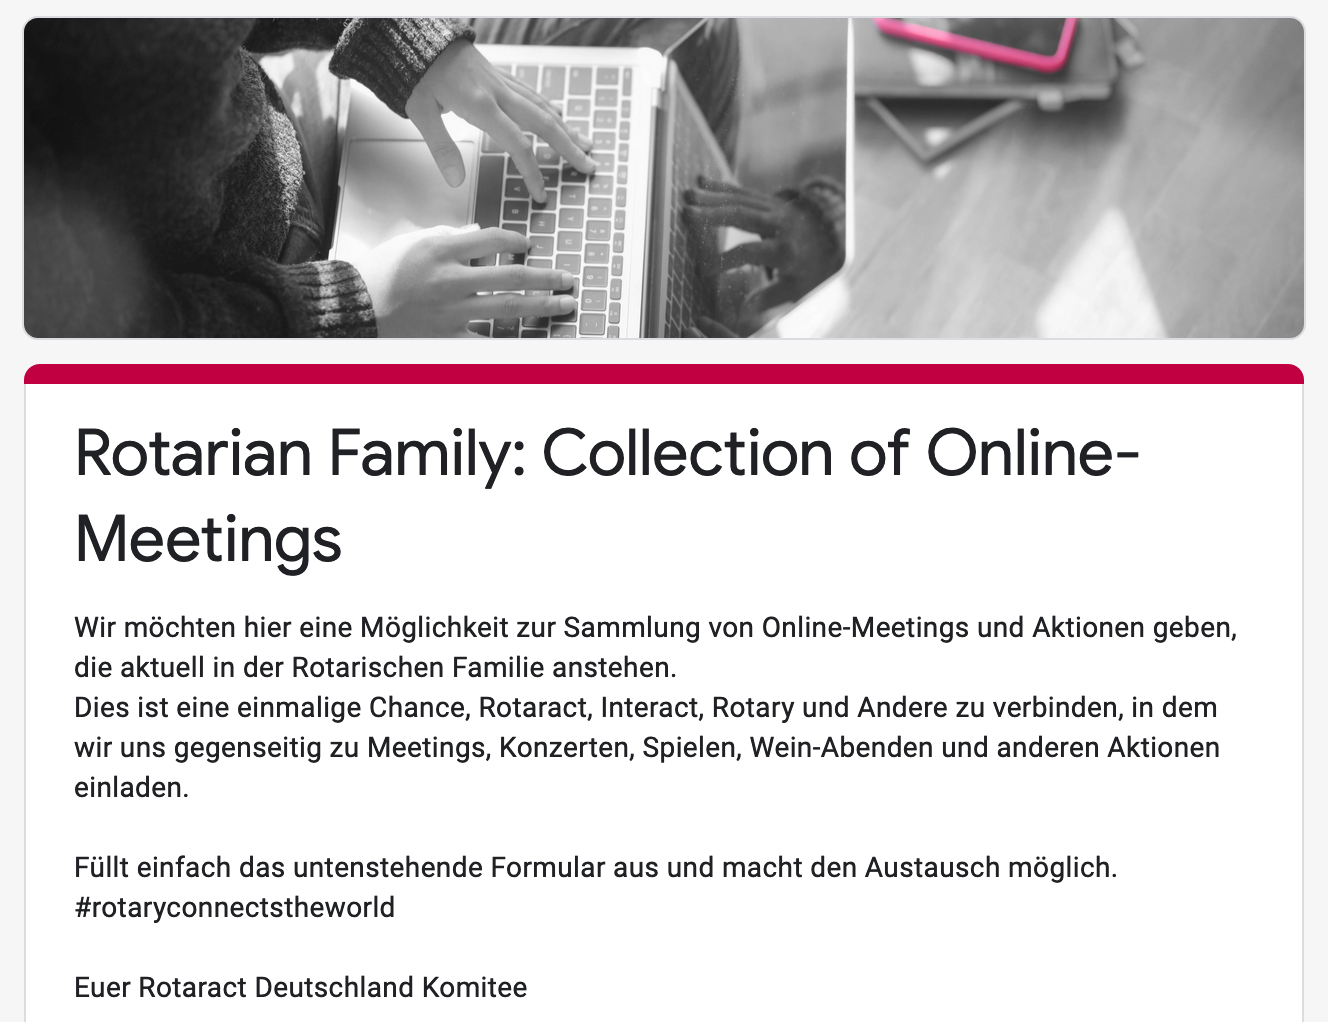 2020, online-meetings, meeting, virtuell, web